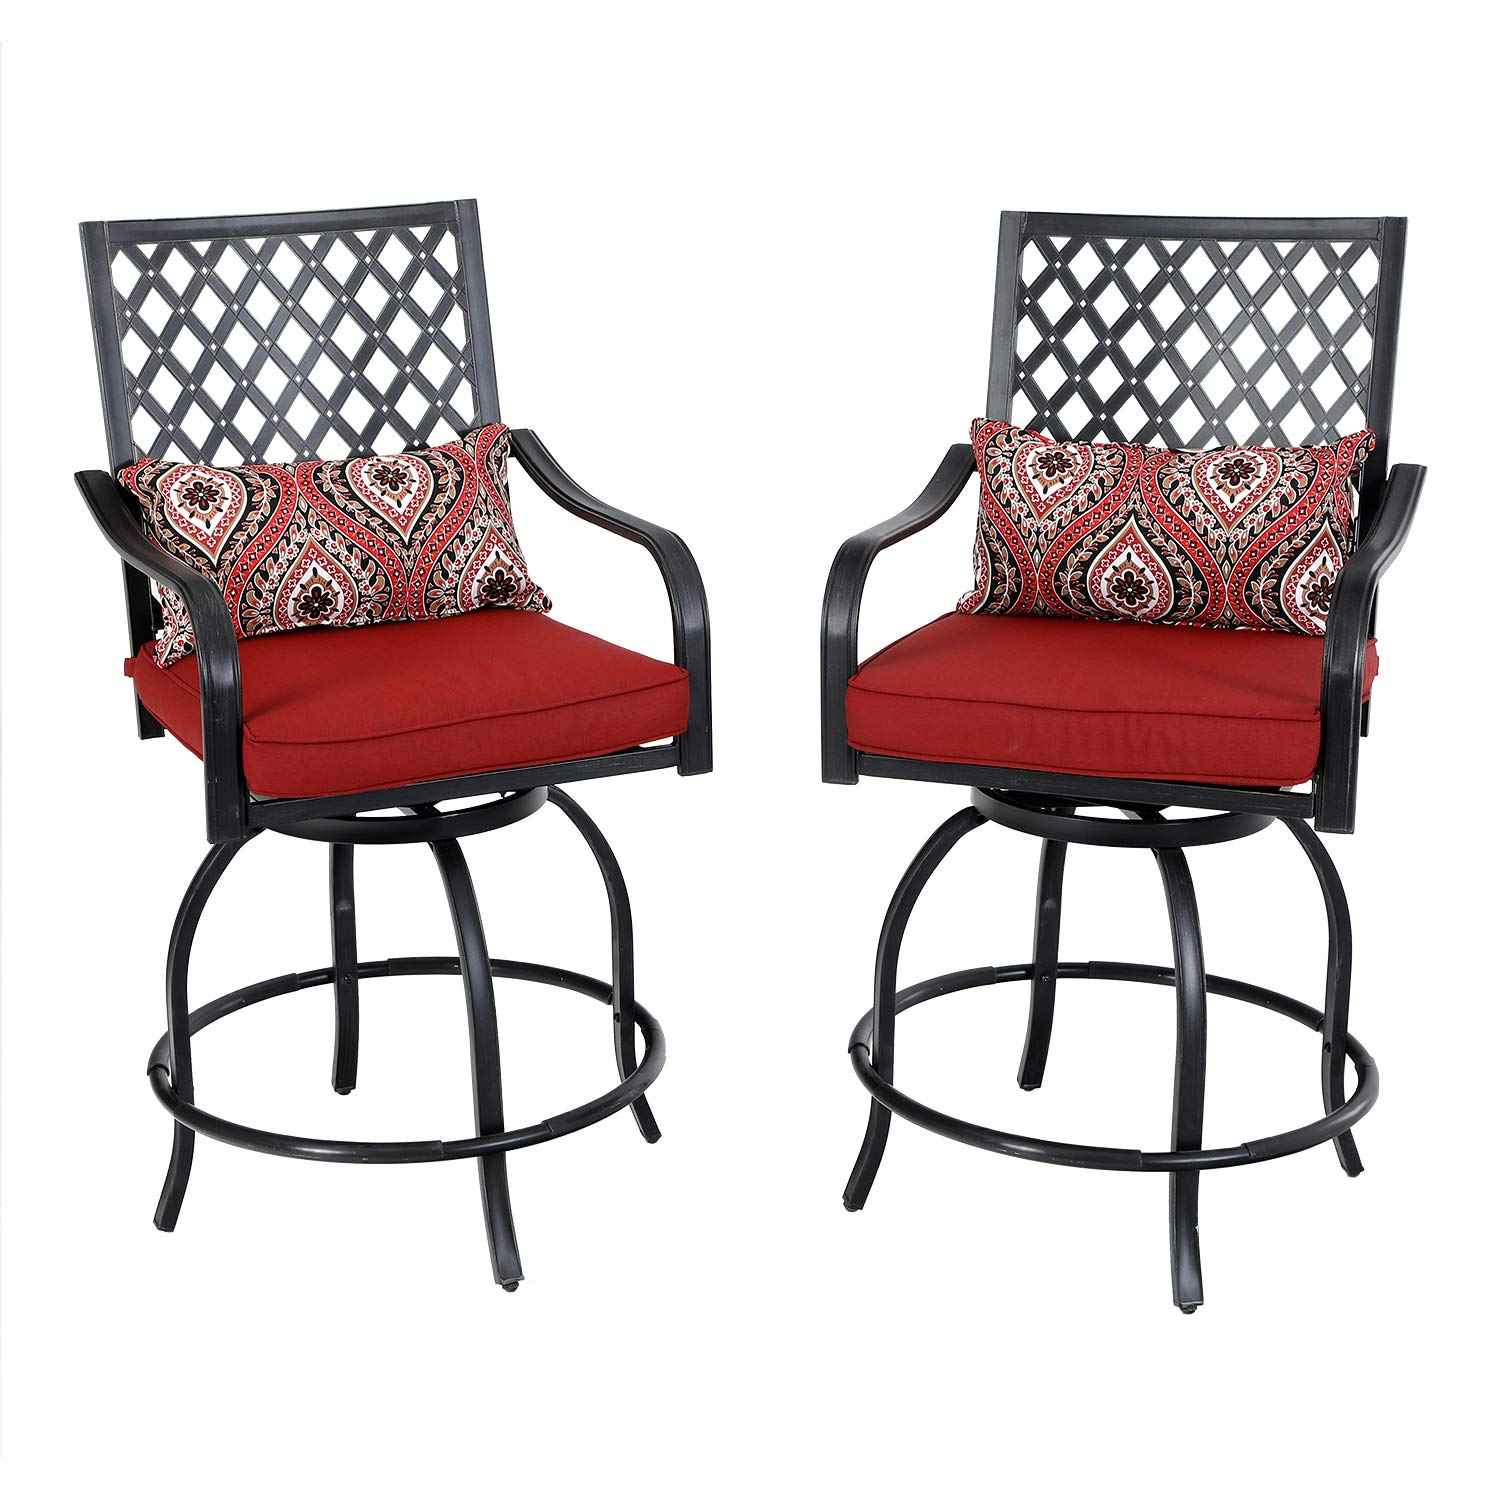 PHI VILLA Outdoor Extra Wide Height Swivel Bar Stools Arms Chairs 2 Pack by PHI VILLA